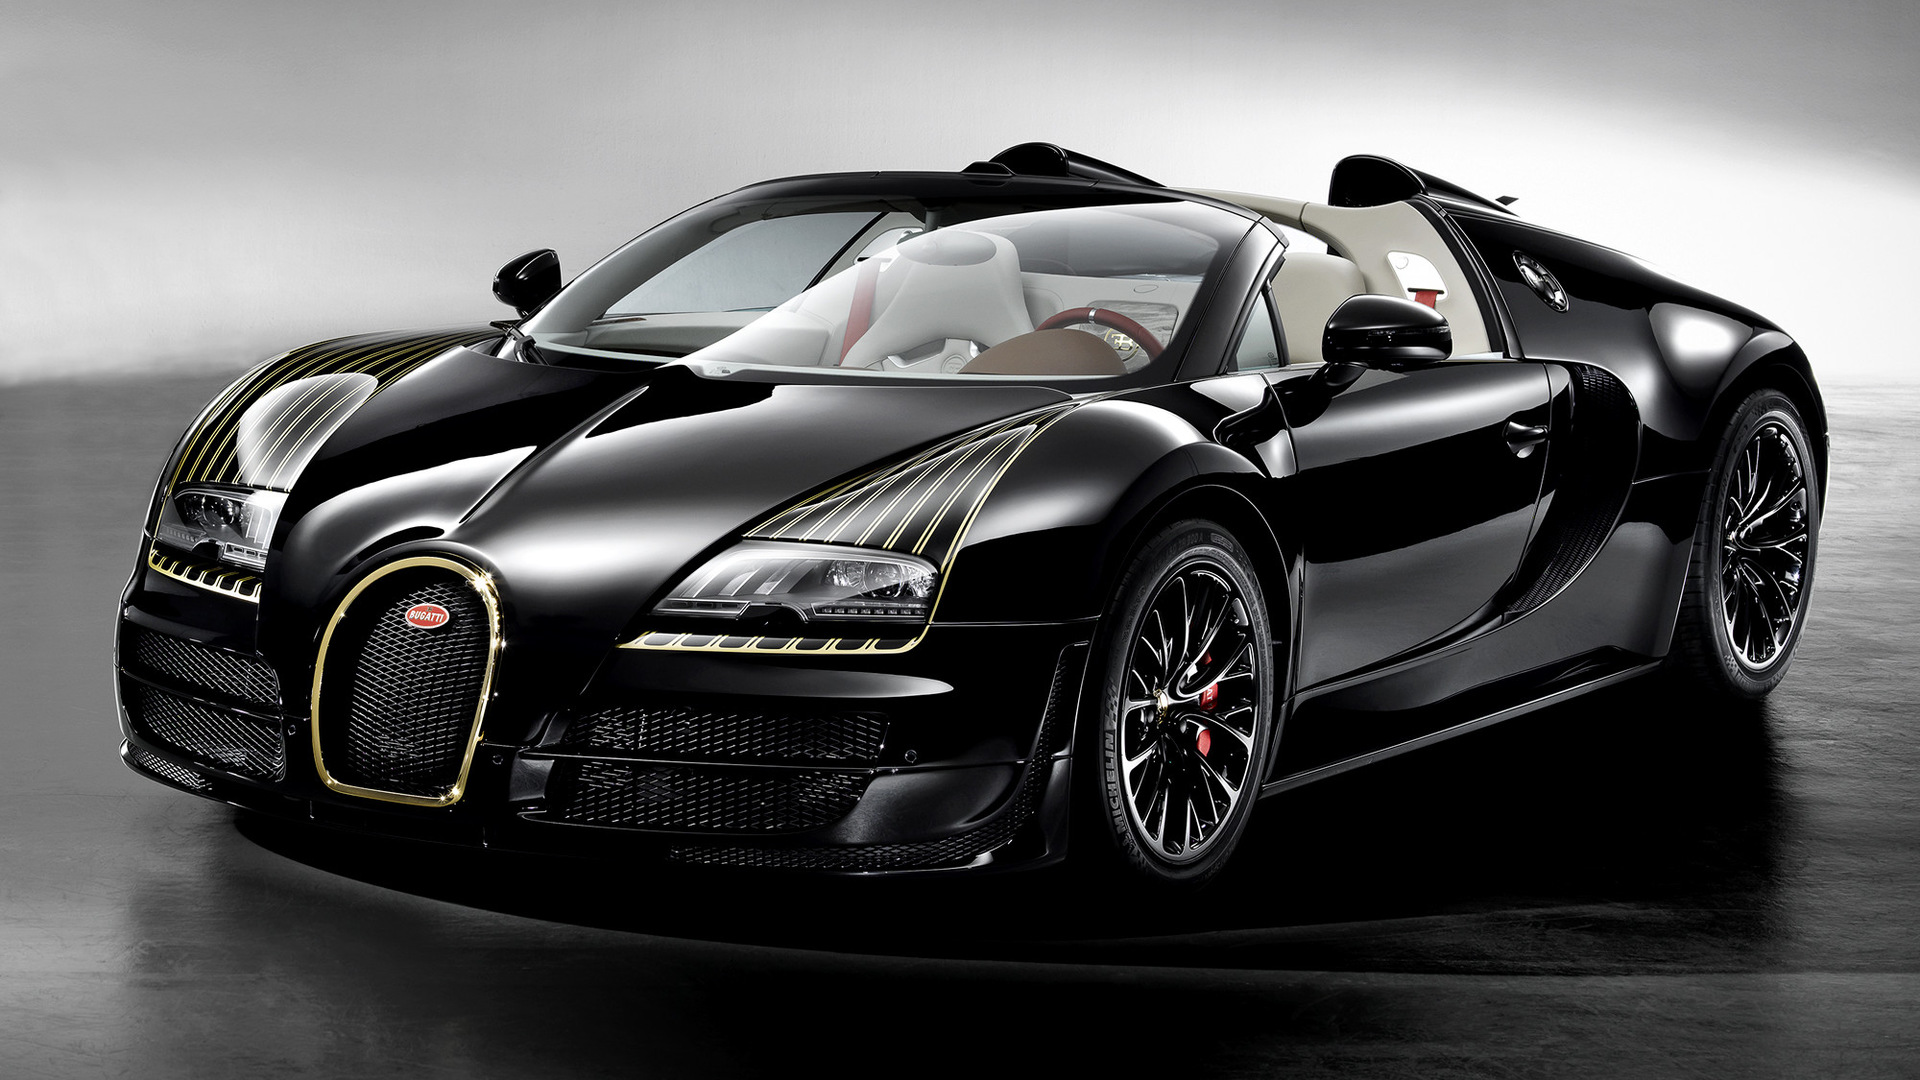 2019 Bugatti Veyron Grand Sport Vitesse photo - 4